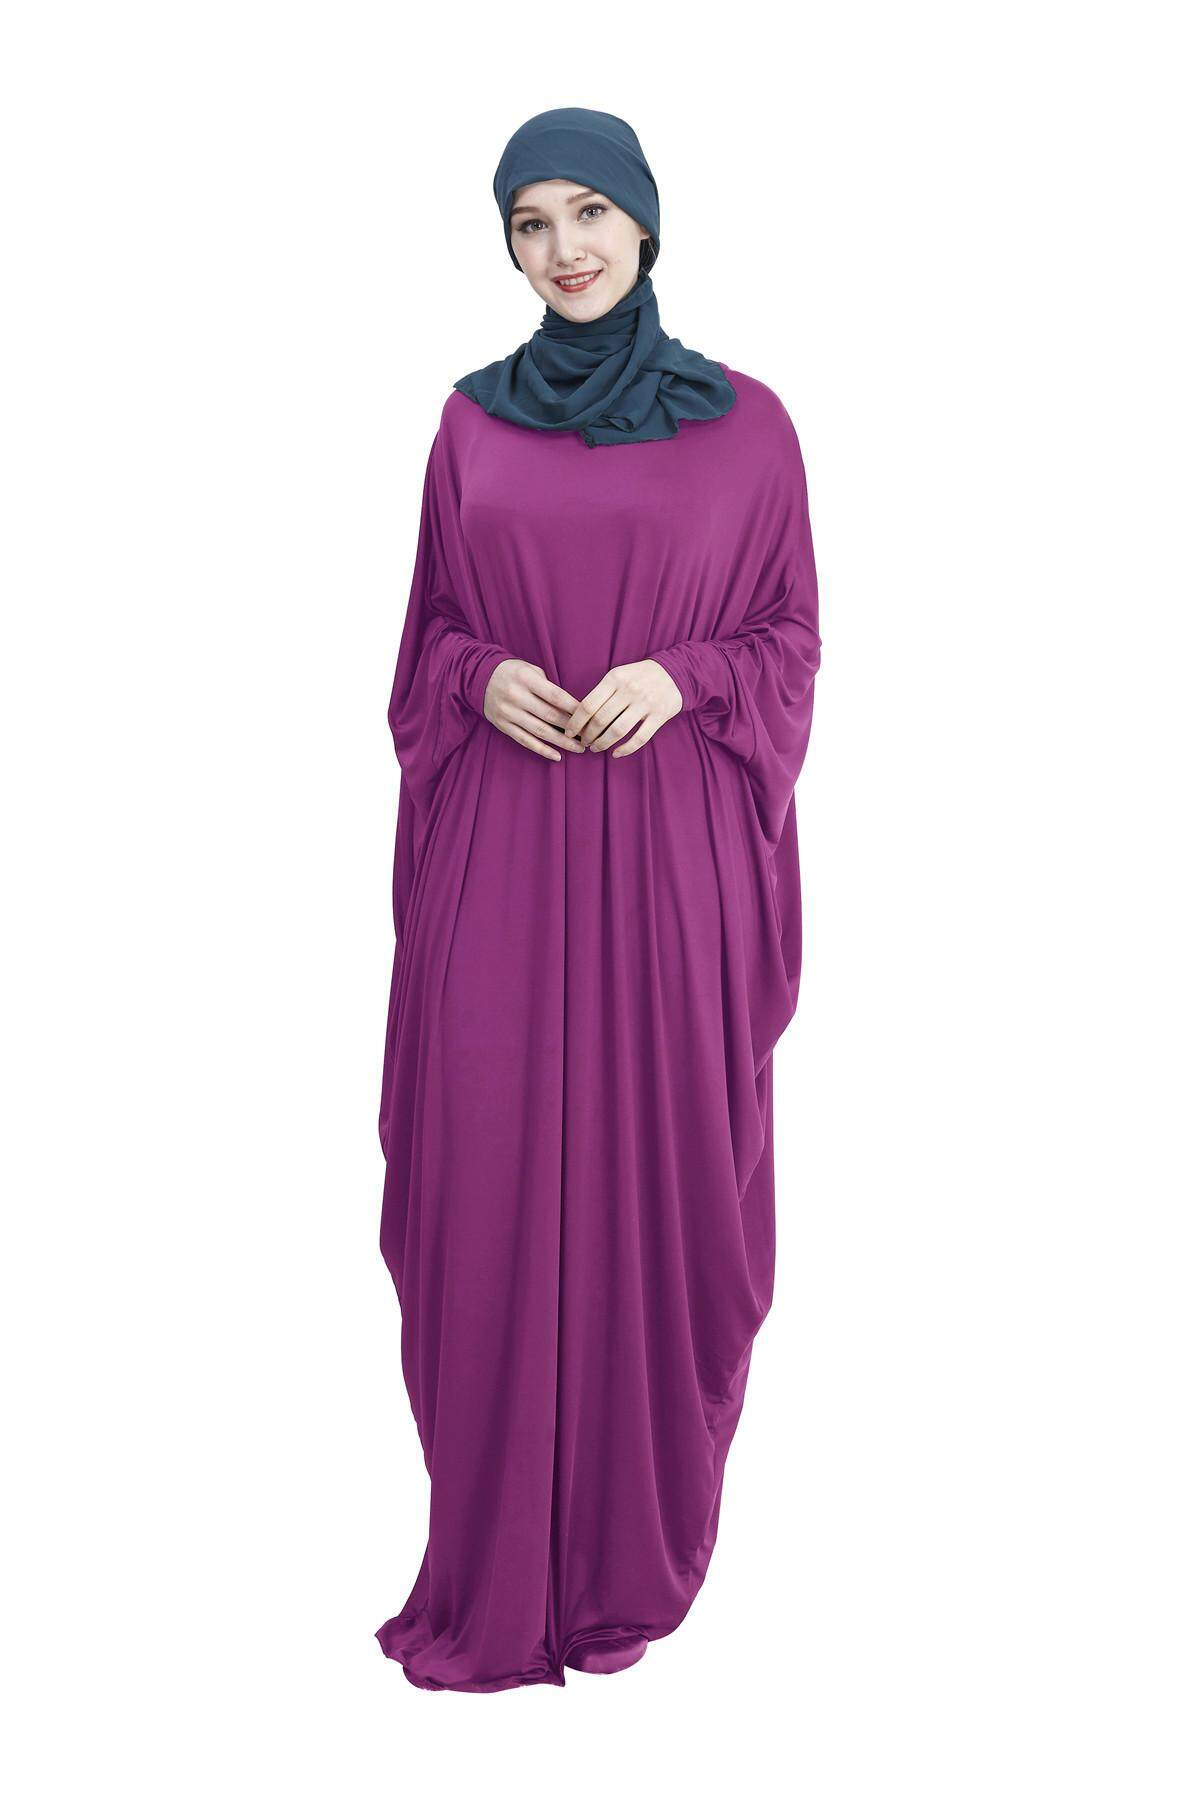 70601ee48c0b4 ZUZU Arab Muslim Cotton Casual Wear A Variety Of Colors Bat Sleeves Robe  New Free shipping